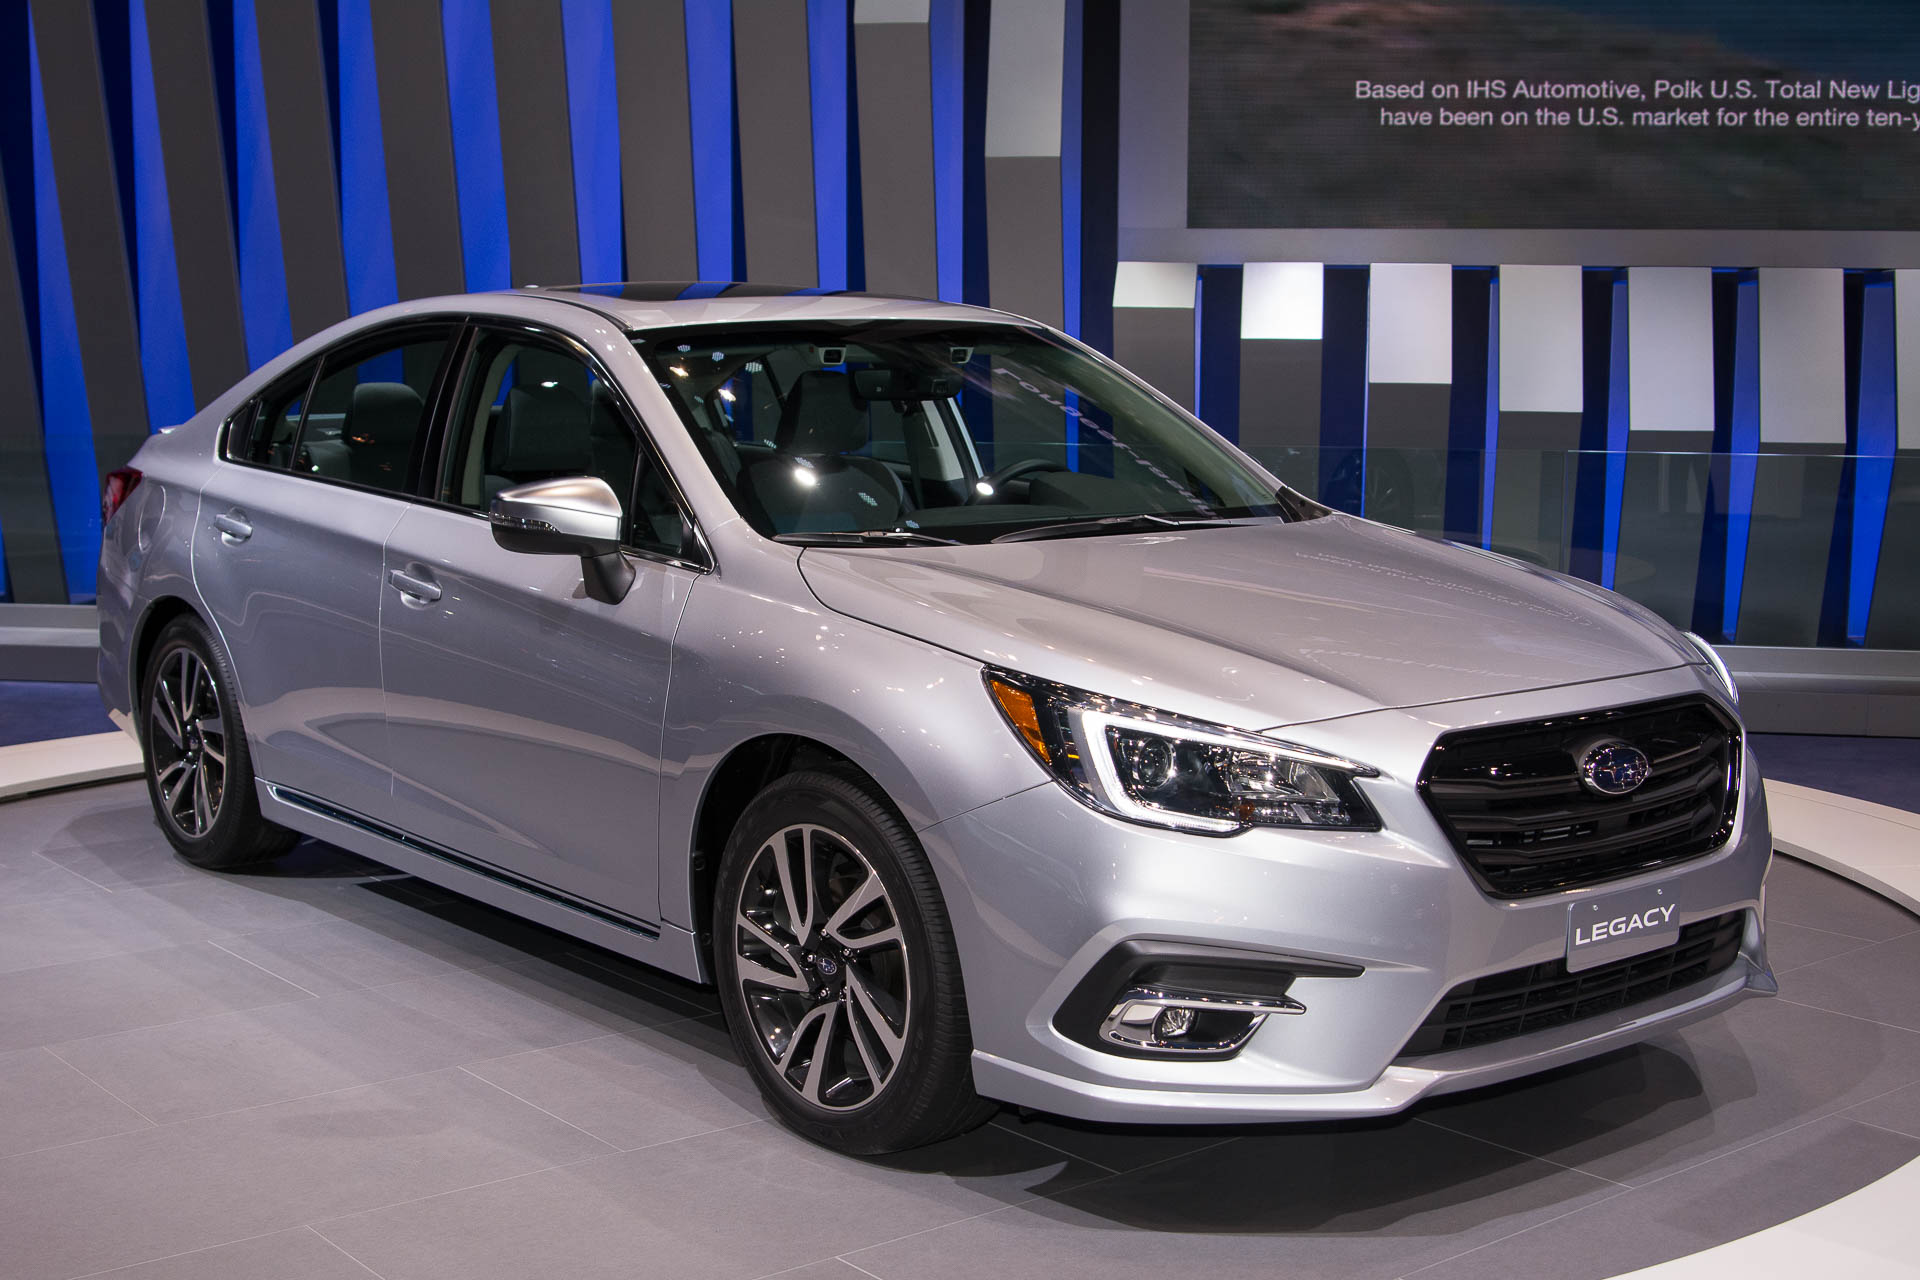 2018 Subaru Legacy Review, Ratings, Specs, Prices, and Photos - The ...